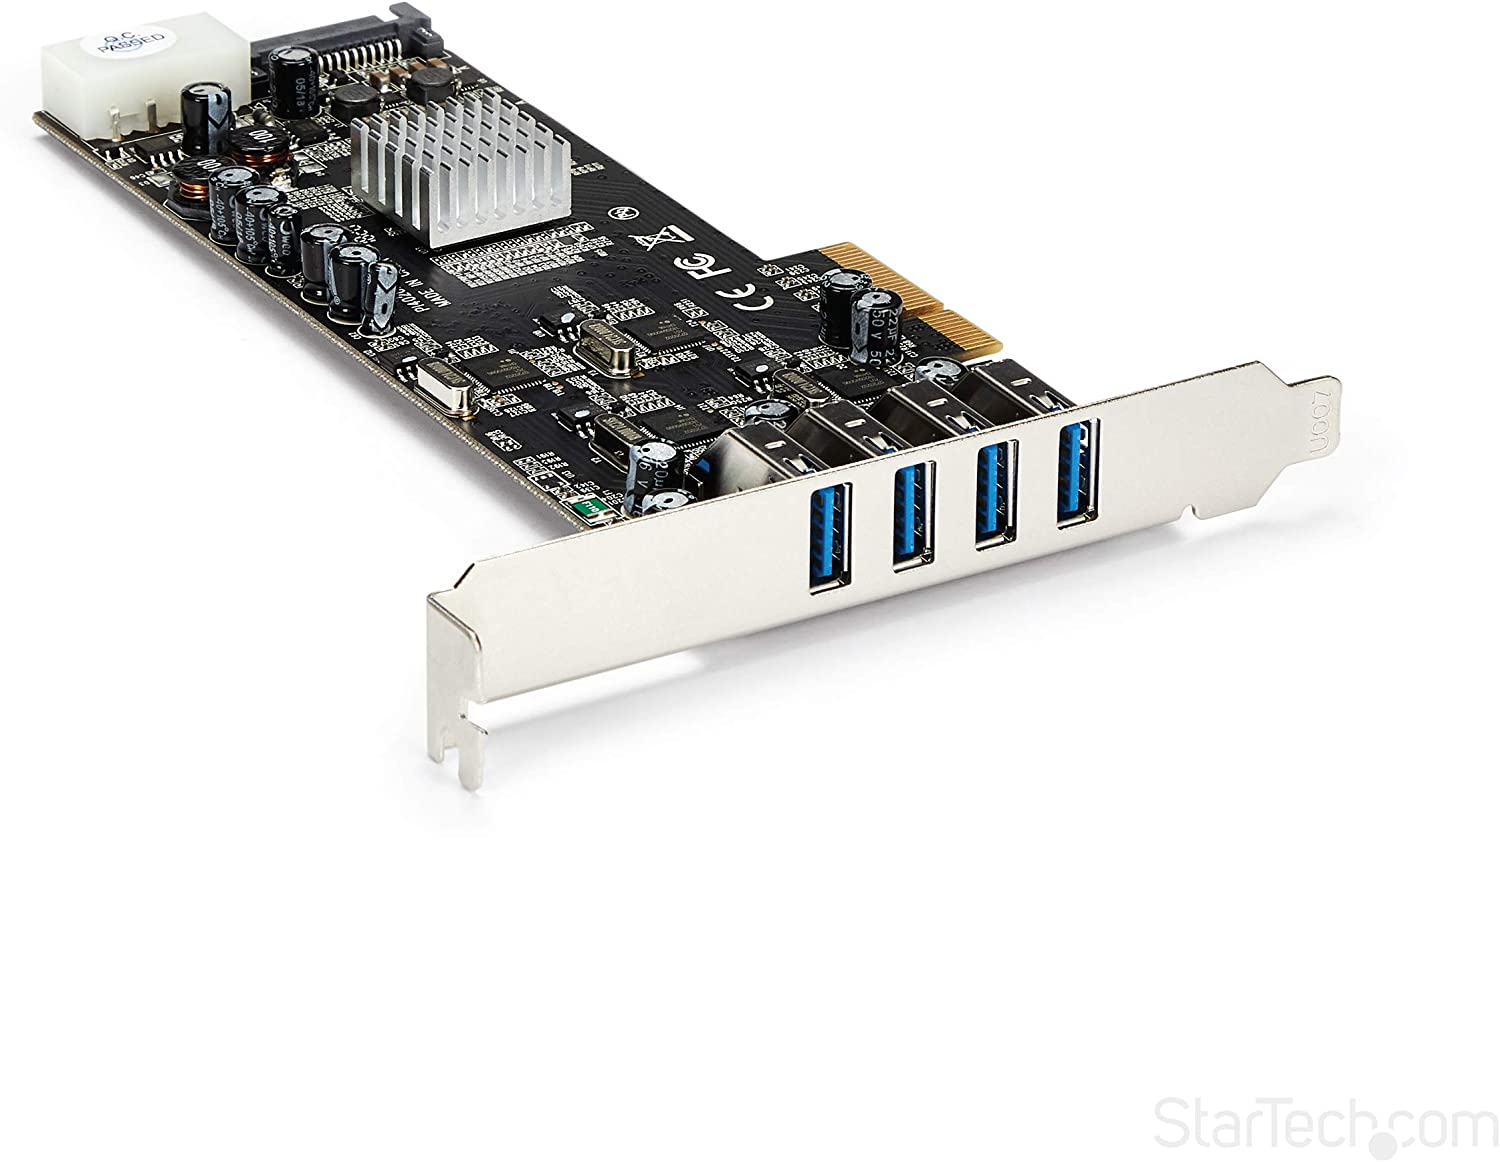 StarTech.com 4 Port USB 3.0 PCIe Card w/ 4 Dedicated 5Gbps Channels (USB 3.1 Gen 1) - UASP - SATA / LP4 Power - PCI Express Adapter Card (PEXUSB3S44V)